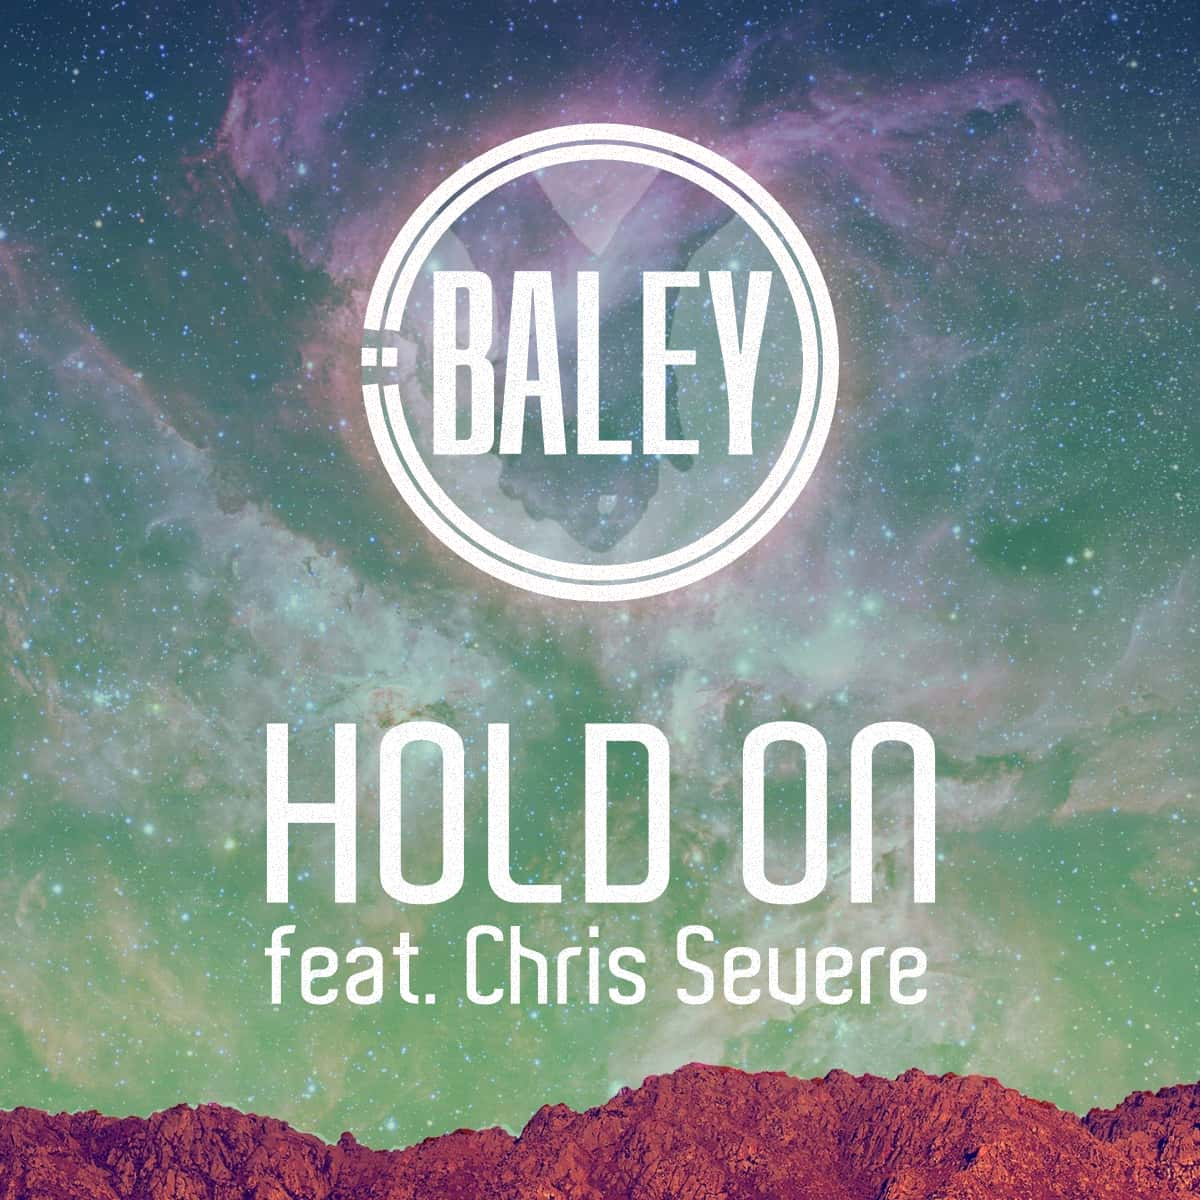 Baley - Hold on feat. Chris Severe